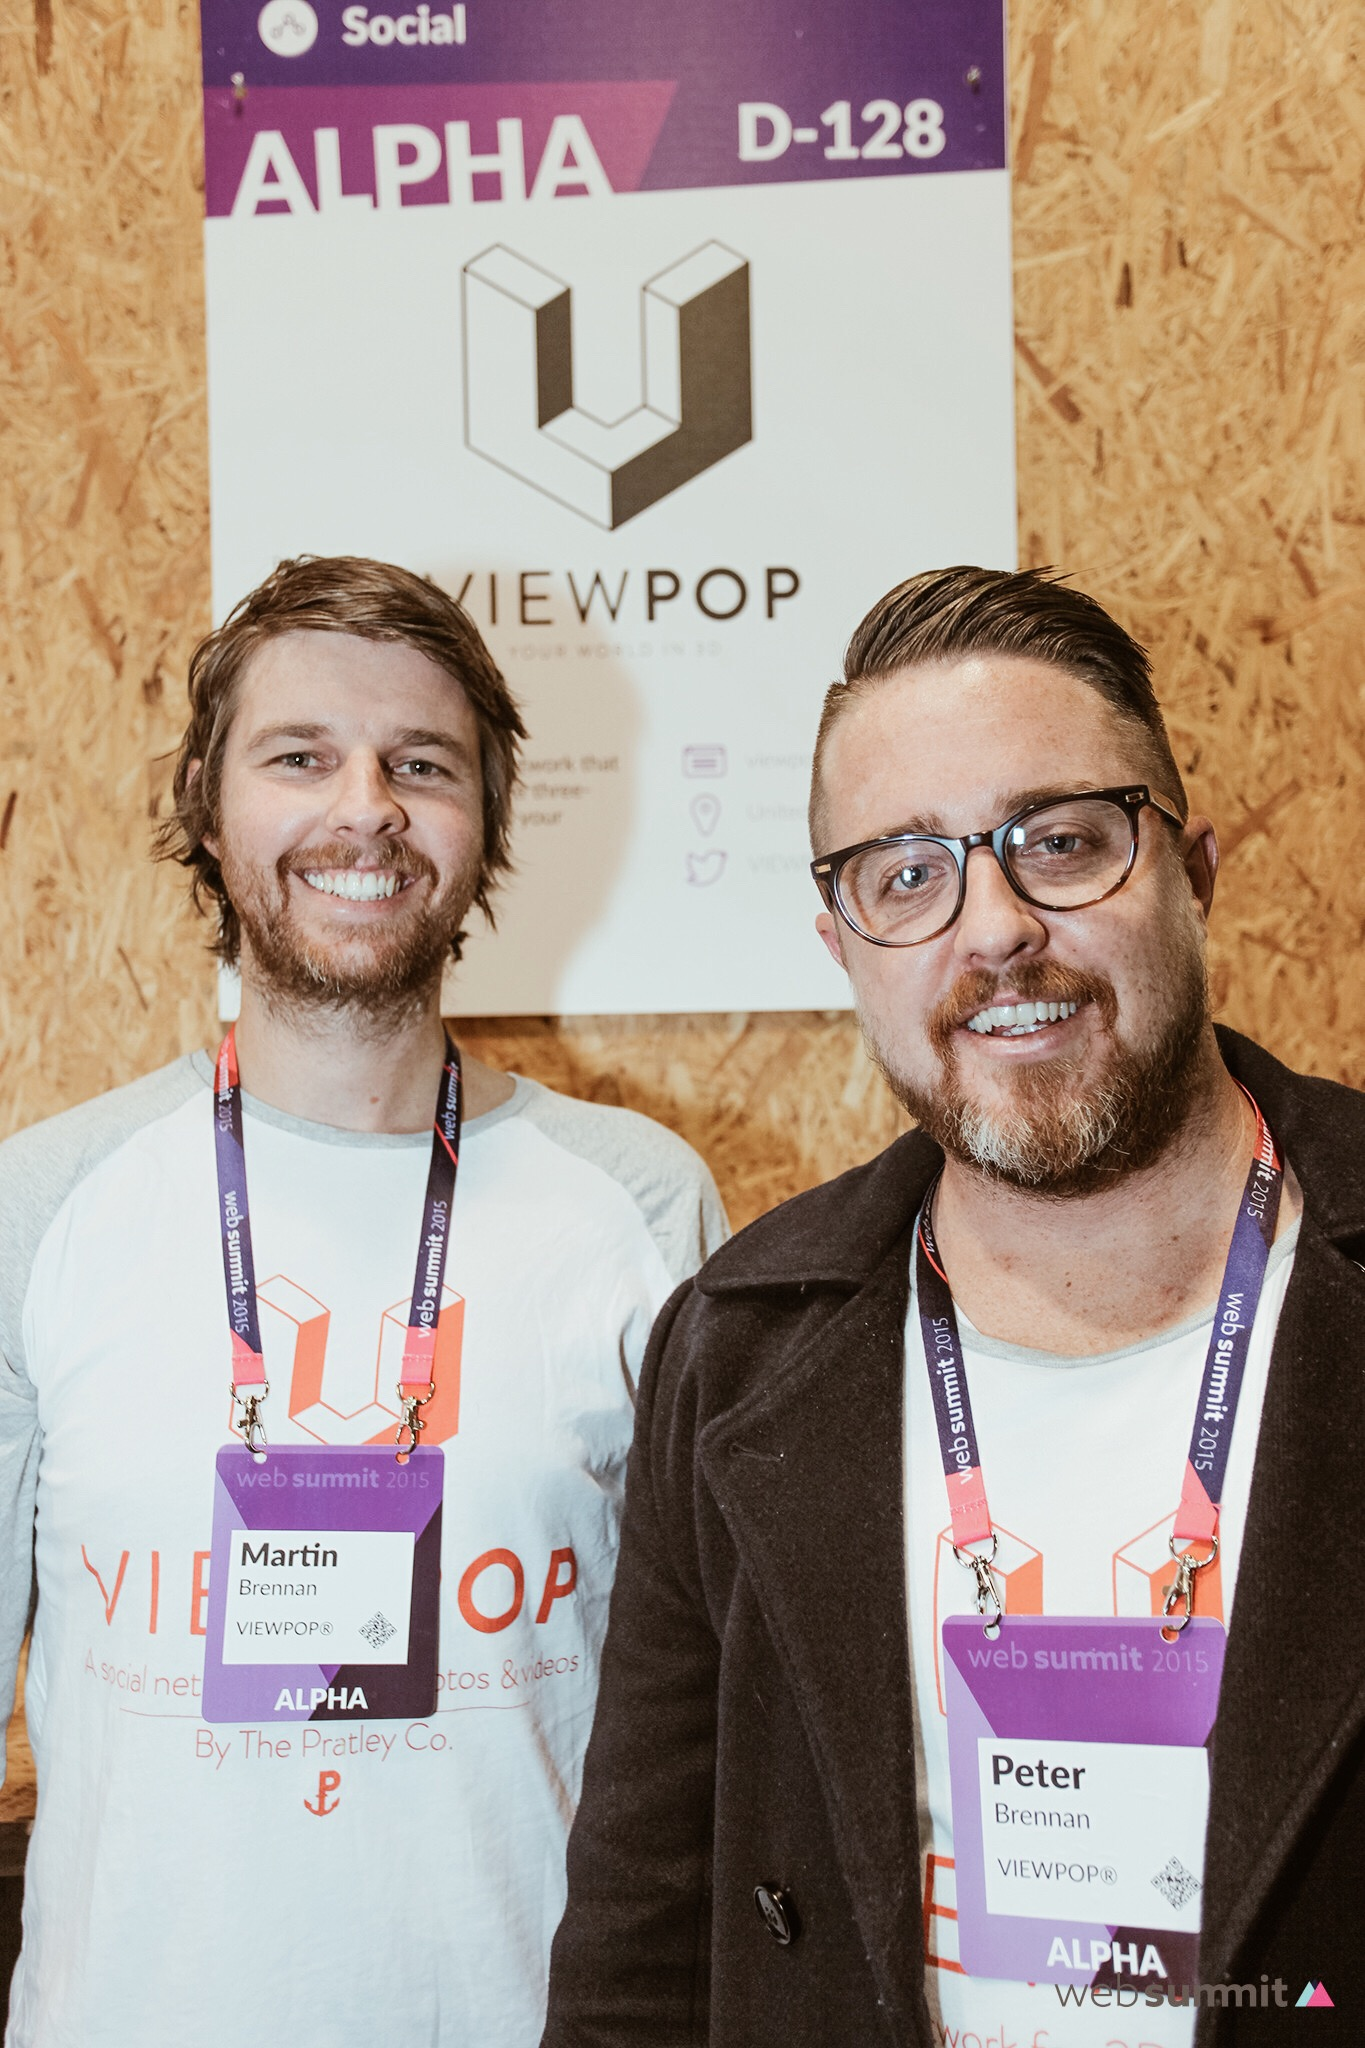 The VIEWPOP Co-Founders in Web Summit's Alpha Village, Day 3. Dublin.